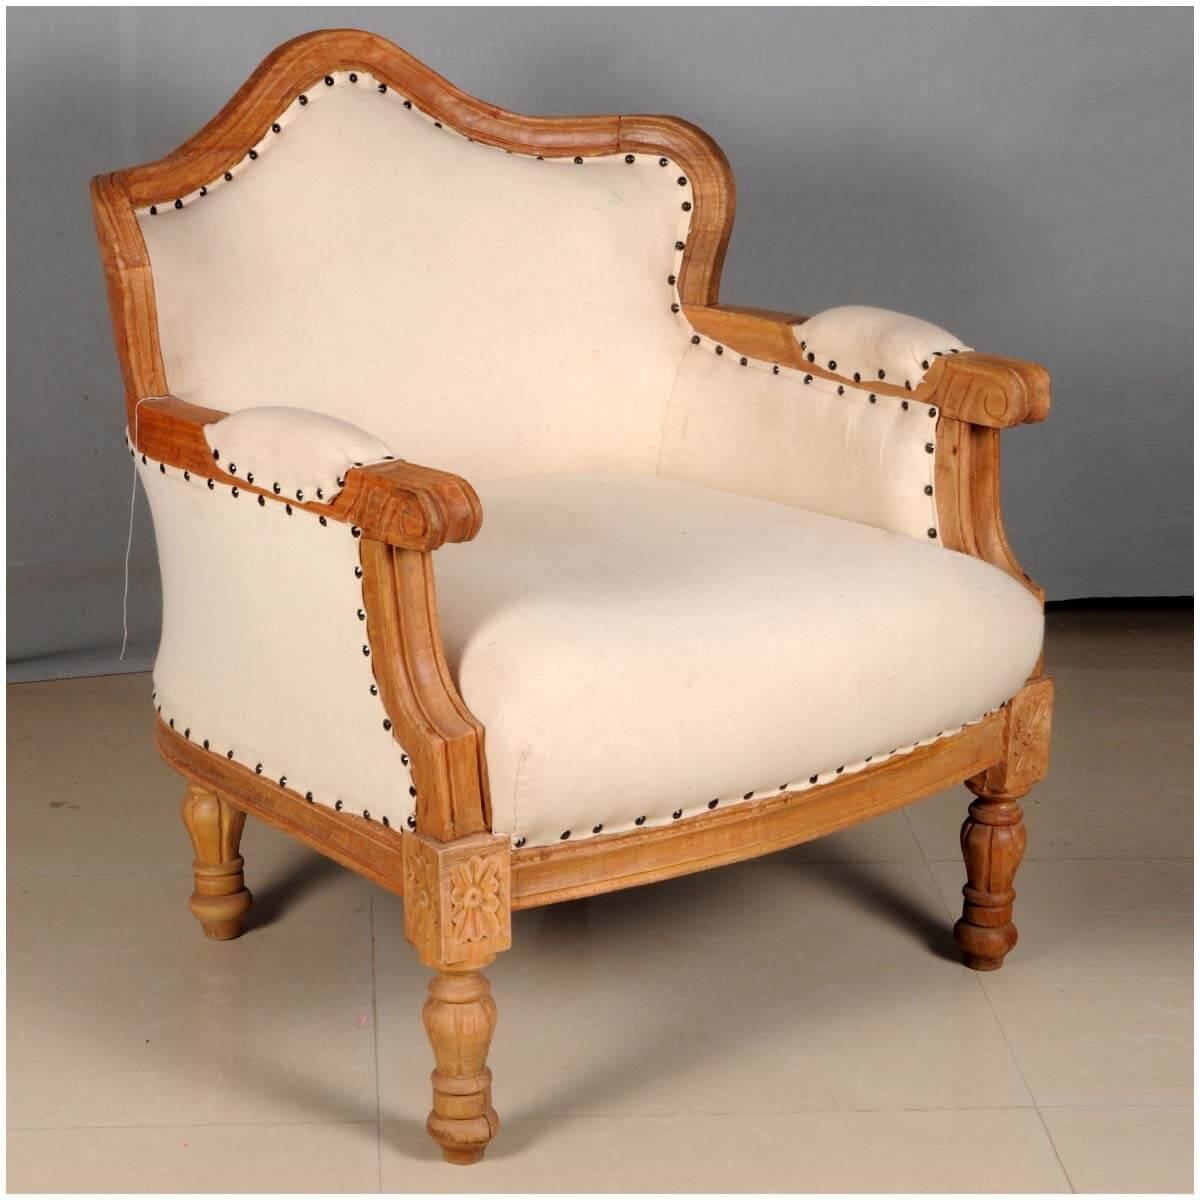 Overstuffed Armchair 28 Images 17 Best Images About Overstuffed Furniture On Pinterest Pair